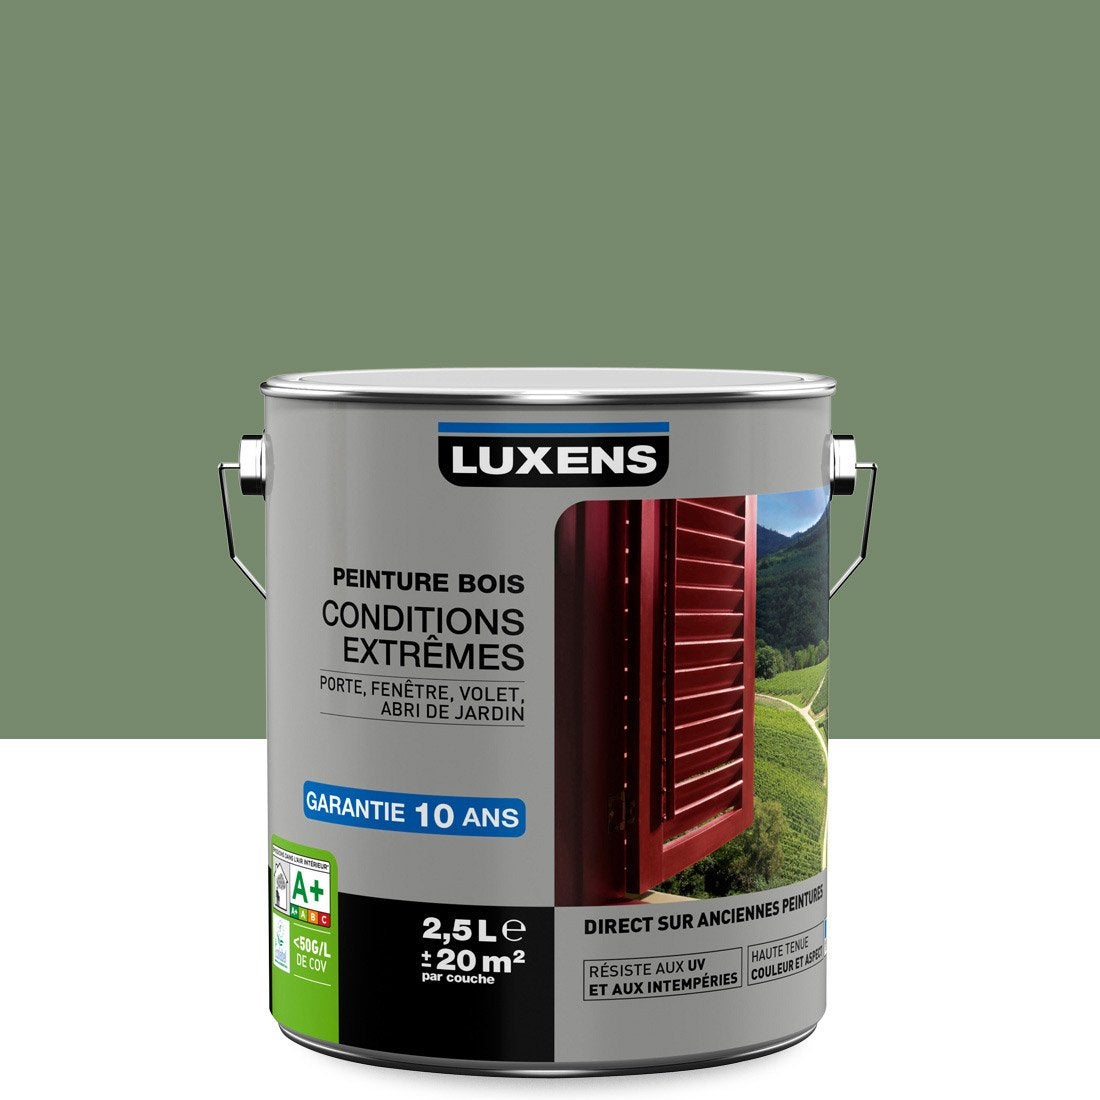 Peinture bois ext rieur conditions extr mes luxens vert - Magasin leroy merlin en france ...